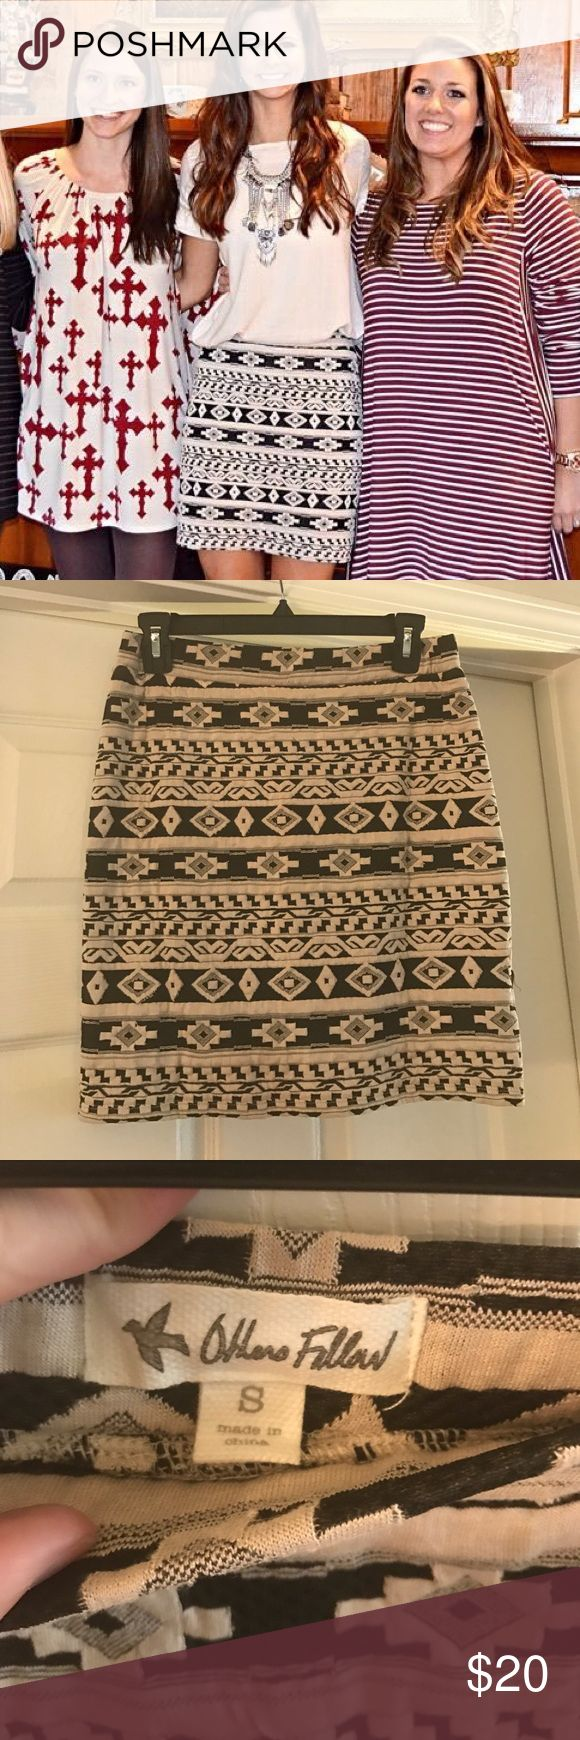 Tribal print skirt Only worn once!! Adorable skirt with elastic waist band. Pairs great with cream colored top. Make an offer! Skirts